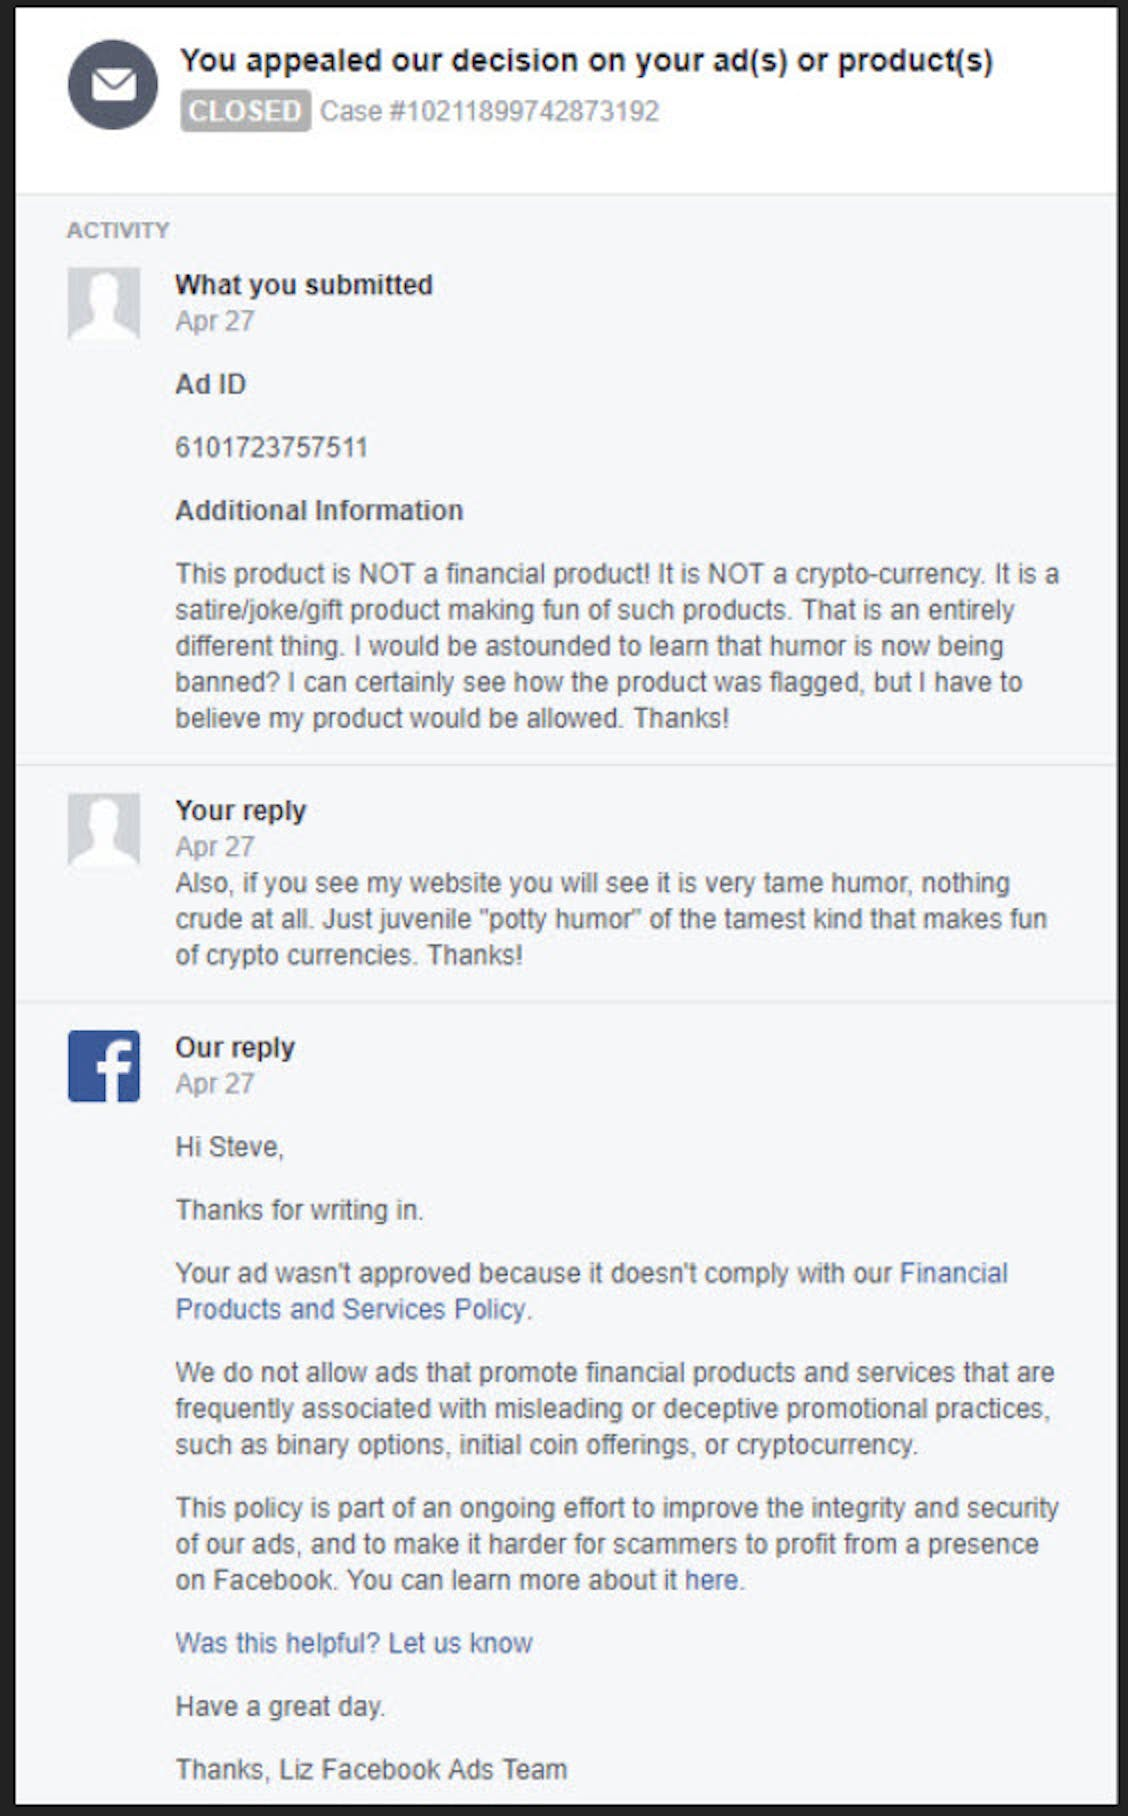 The first exchange between Steve and the Facebook team.